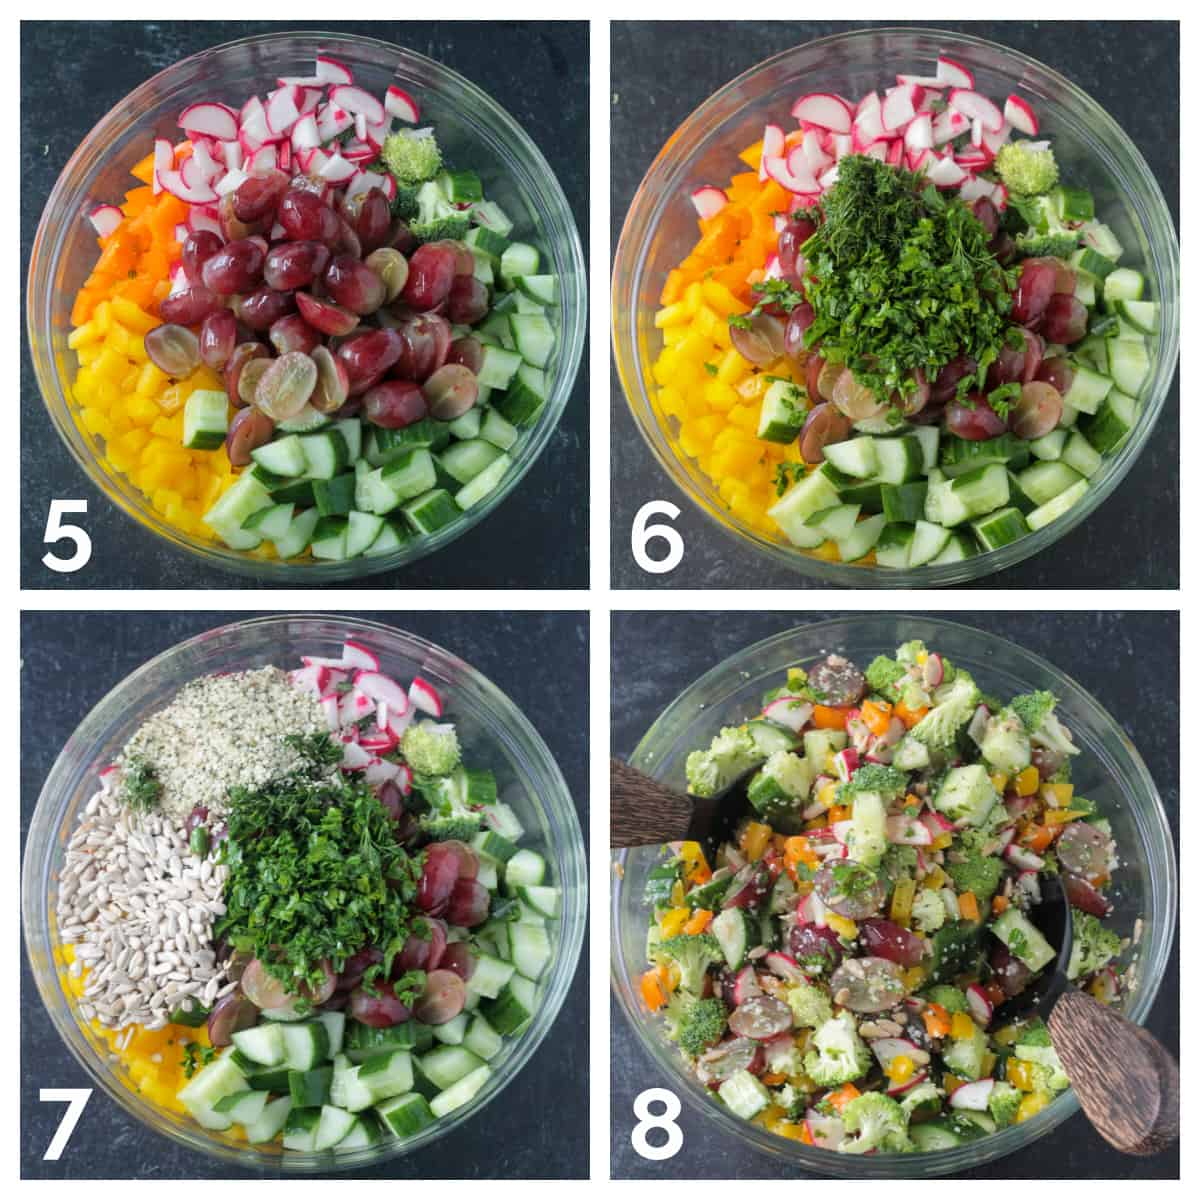 4 photo collage of adding halved red grapes, chopped fresh herbs, and seeds to the bowl and mixing it well.